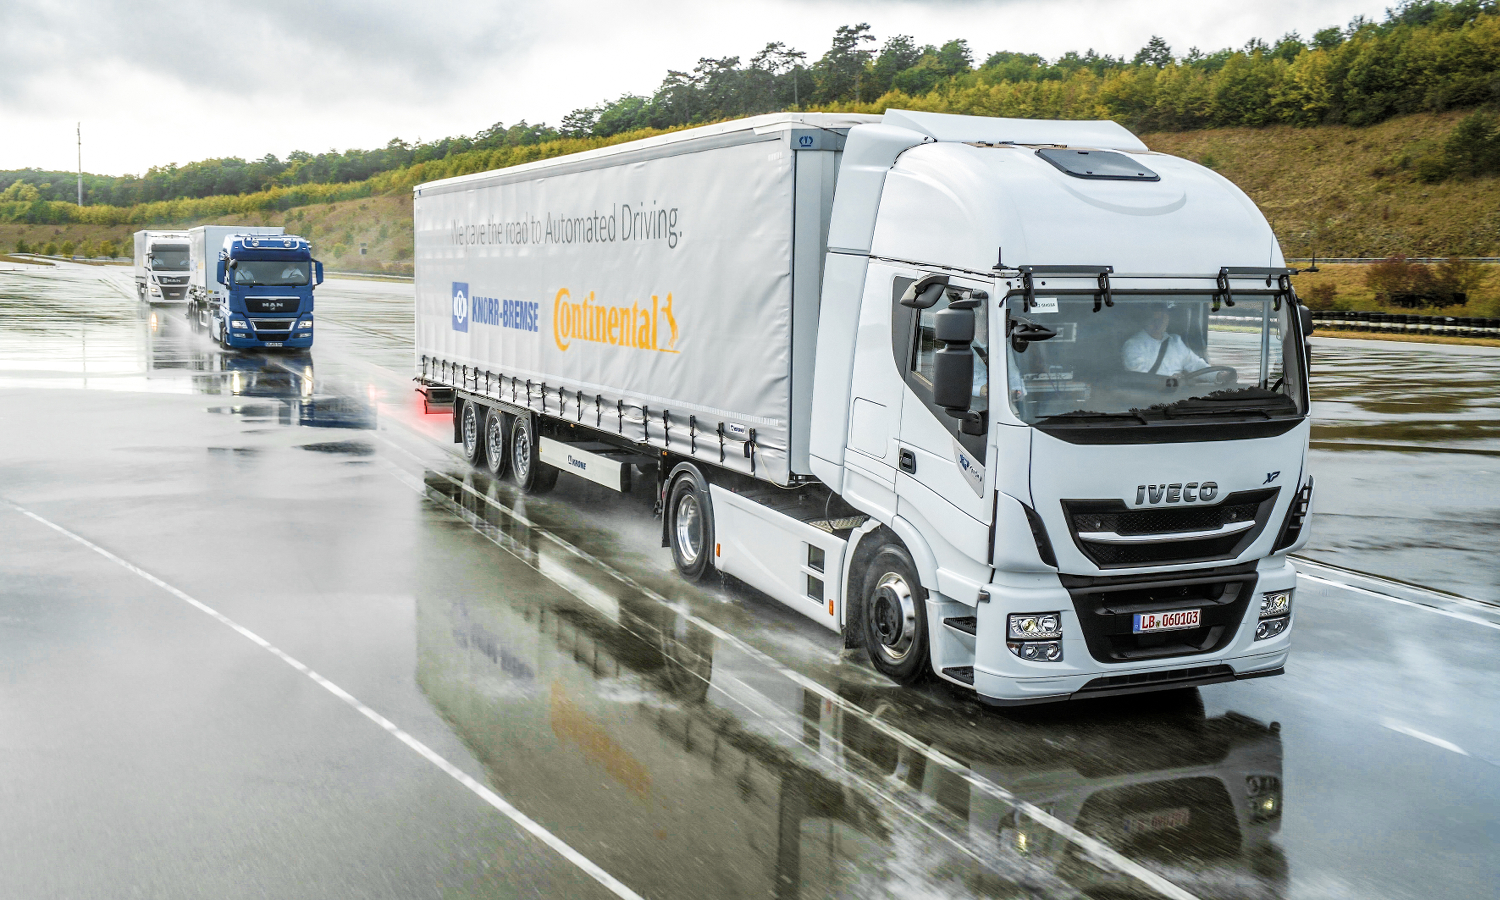 Continental Knorr-Bremse Platooning Lkw autonomes Fahren